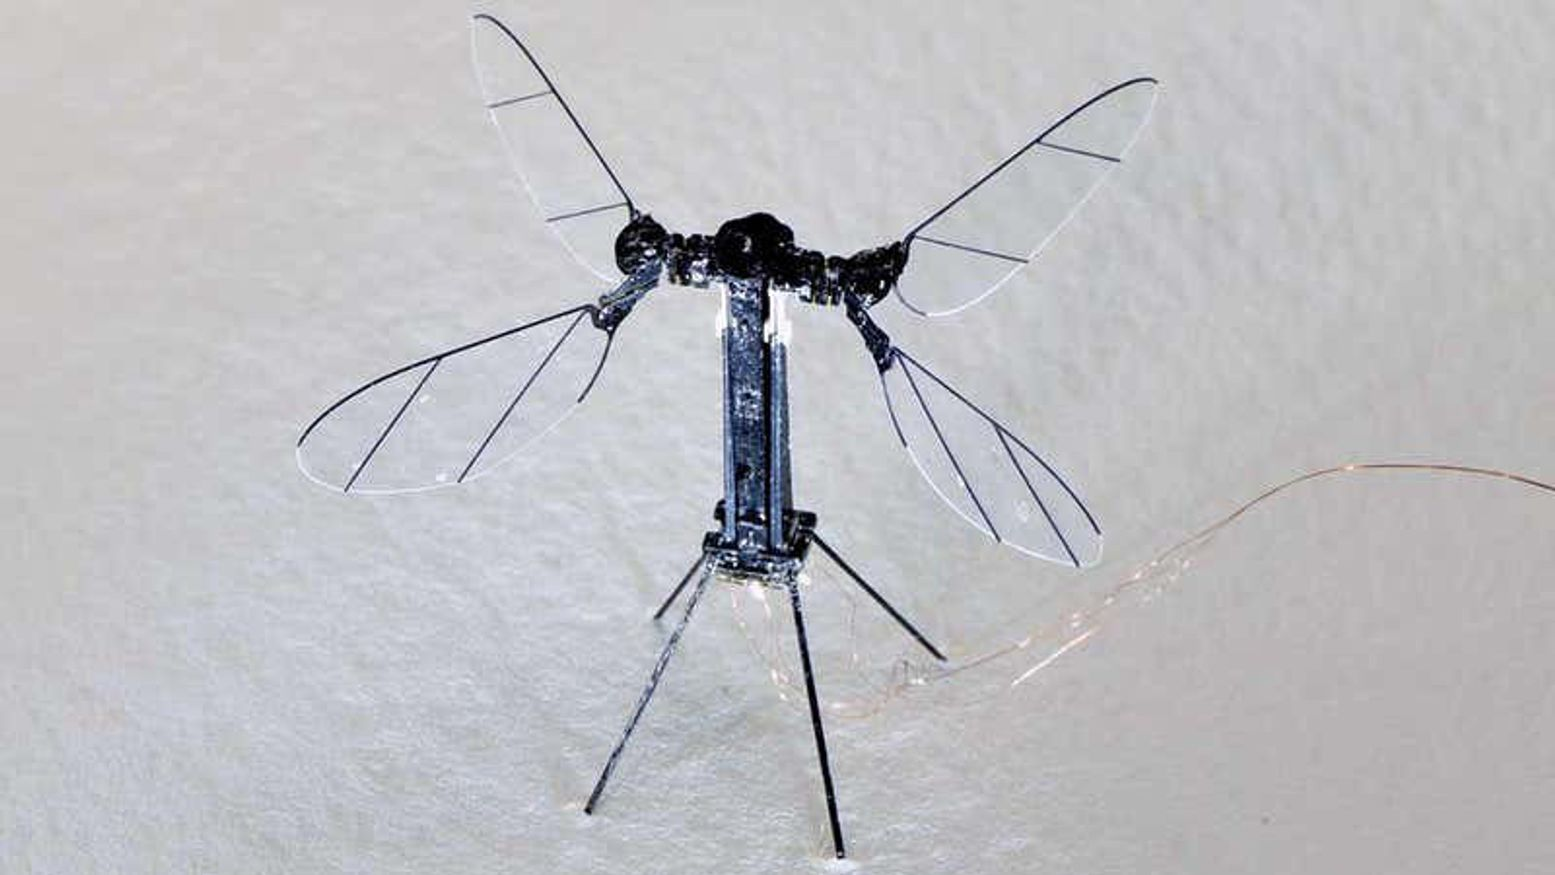 Revolutionary Insect-Based Drone Is Only 2.6-Inches Large but Has One